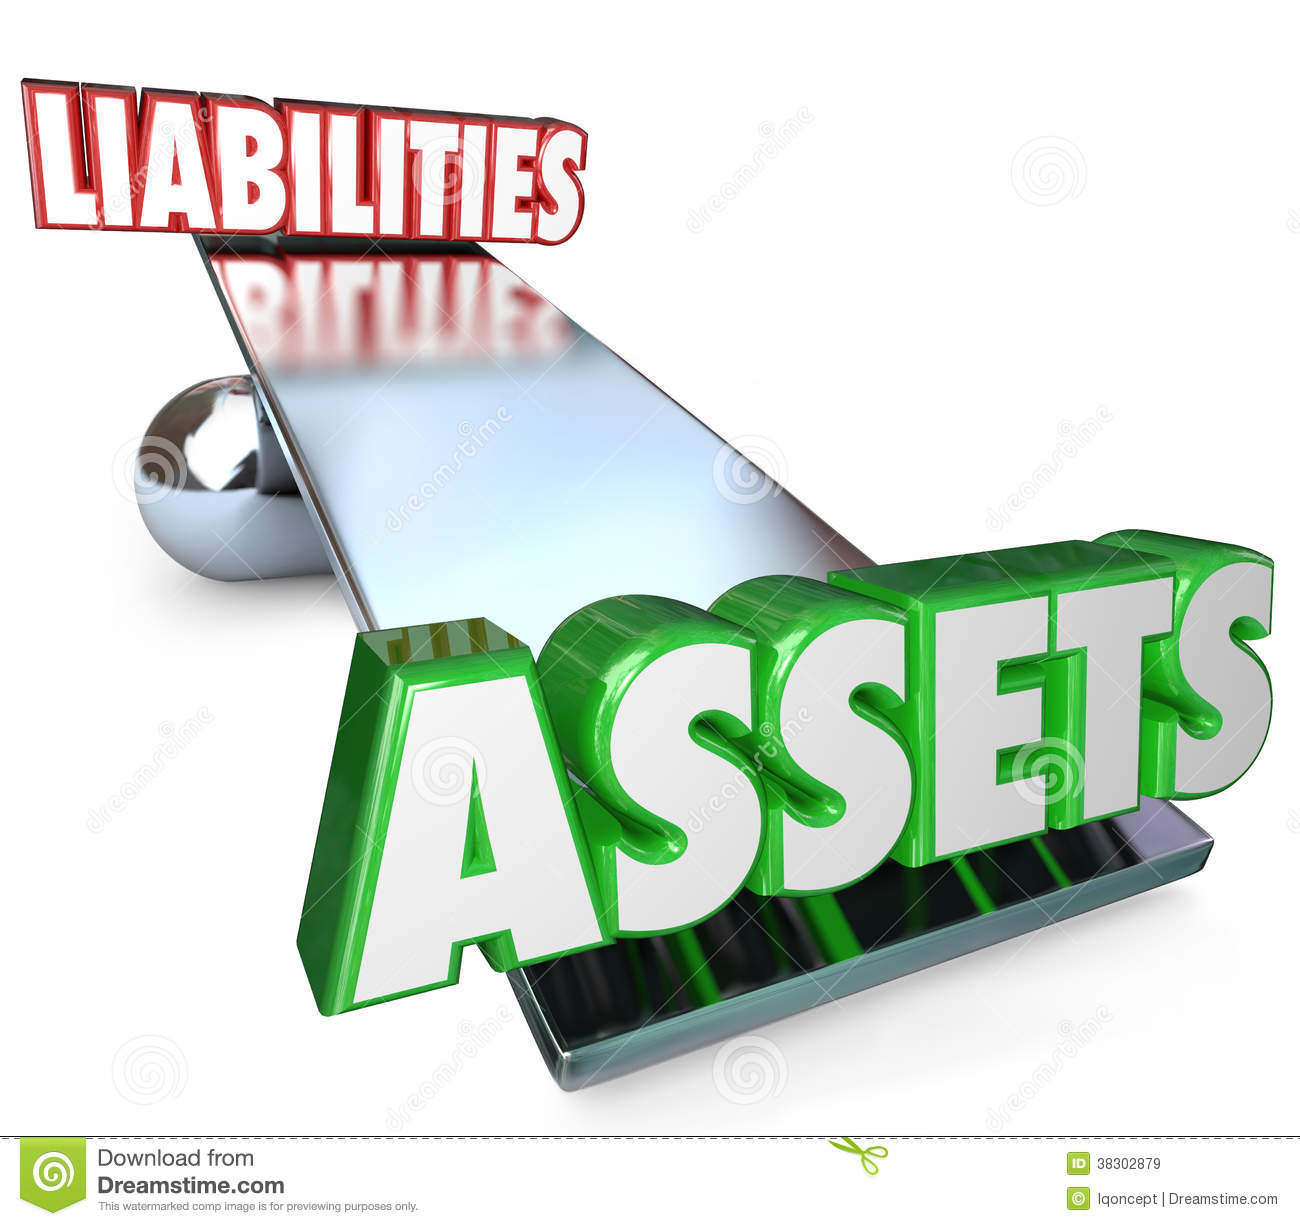 Assets and Liabilities on a see-saw, scale or balance to illustrate ...